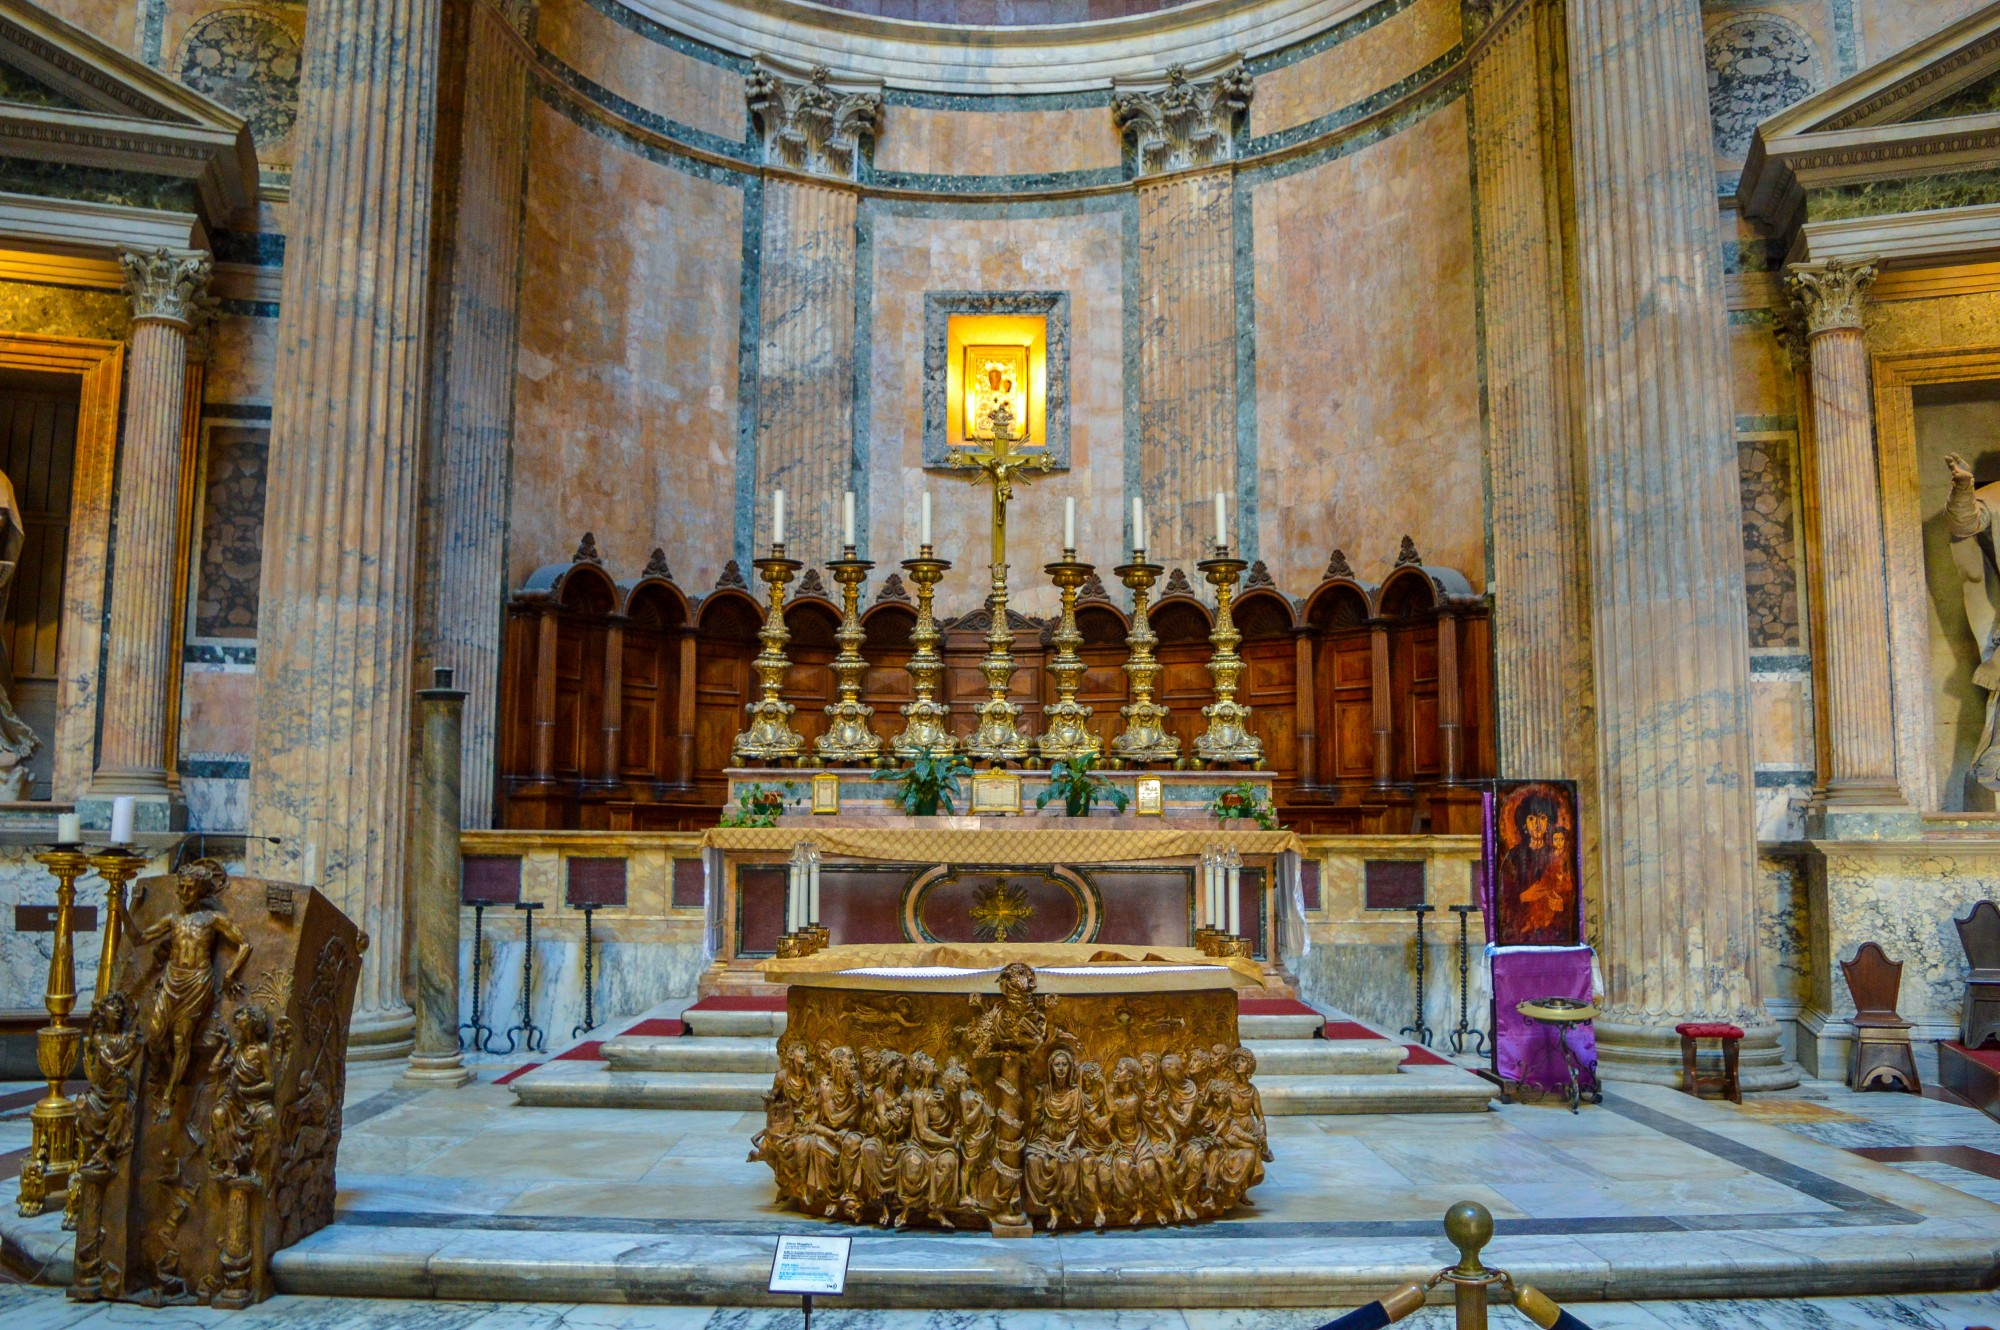 The alter at the Pantheon, Rome